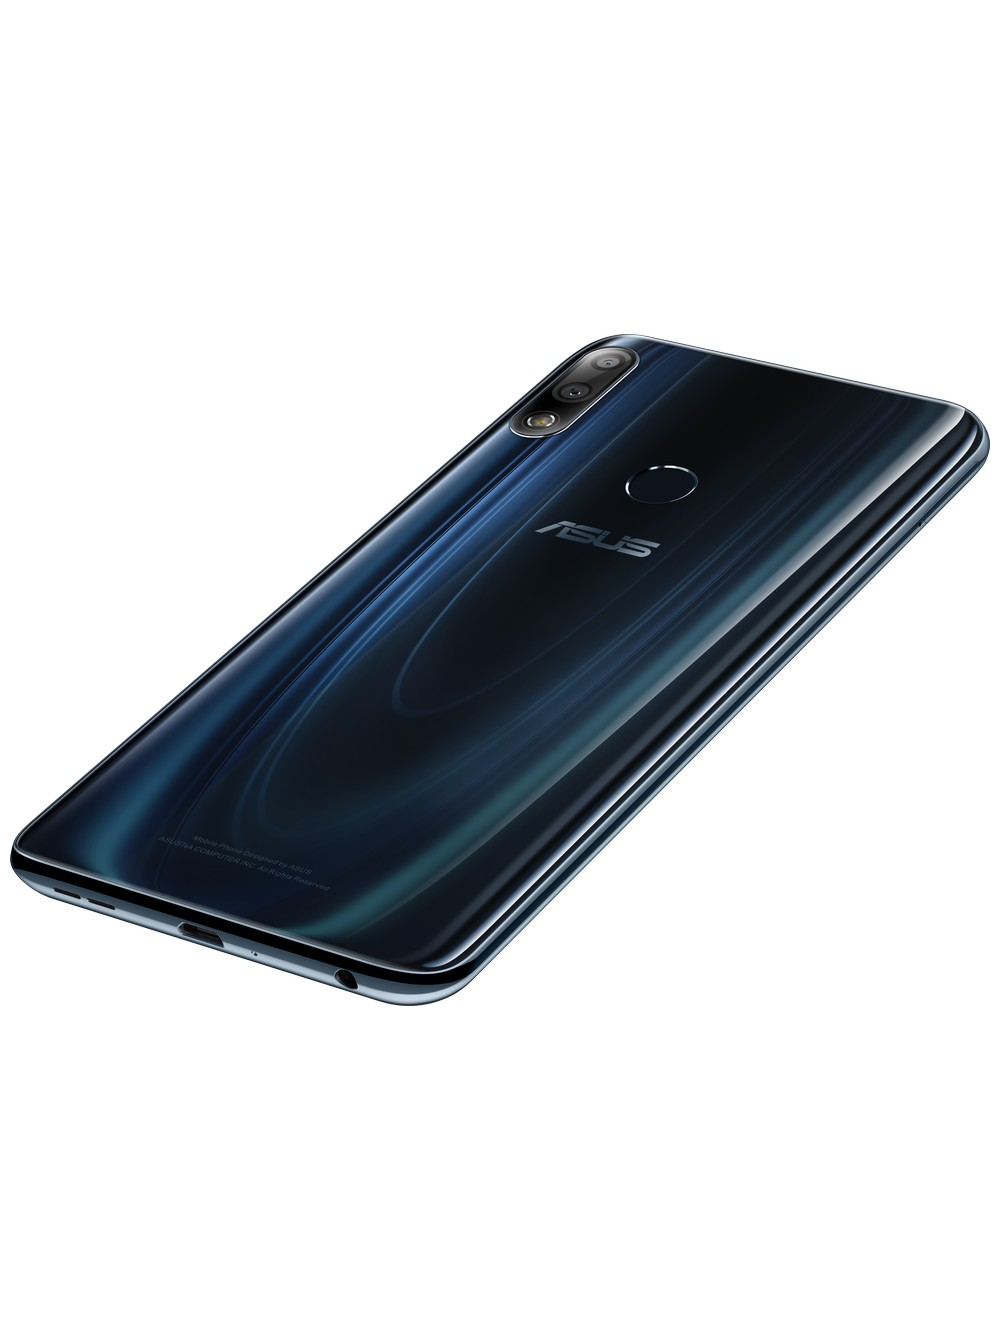 Asus Zenfone Max Pro M2 & Max M2 go official in Russia 11